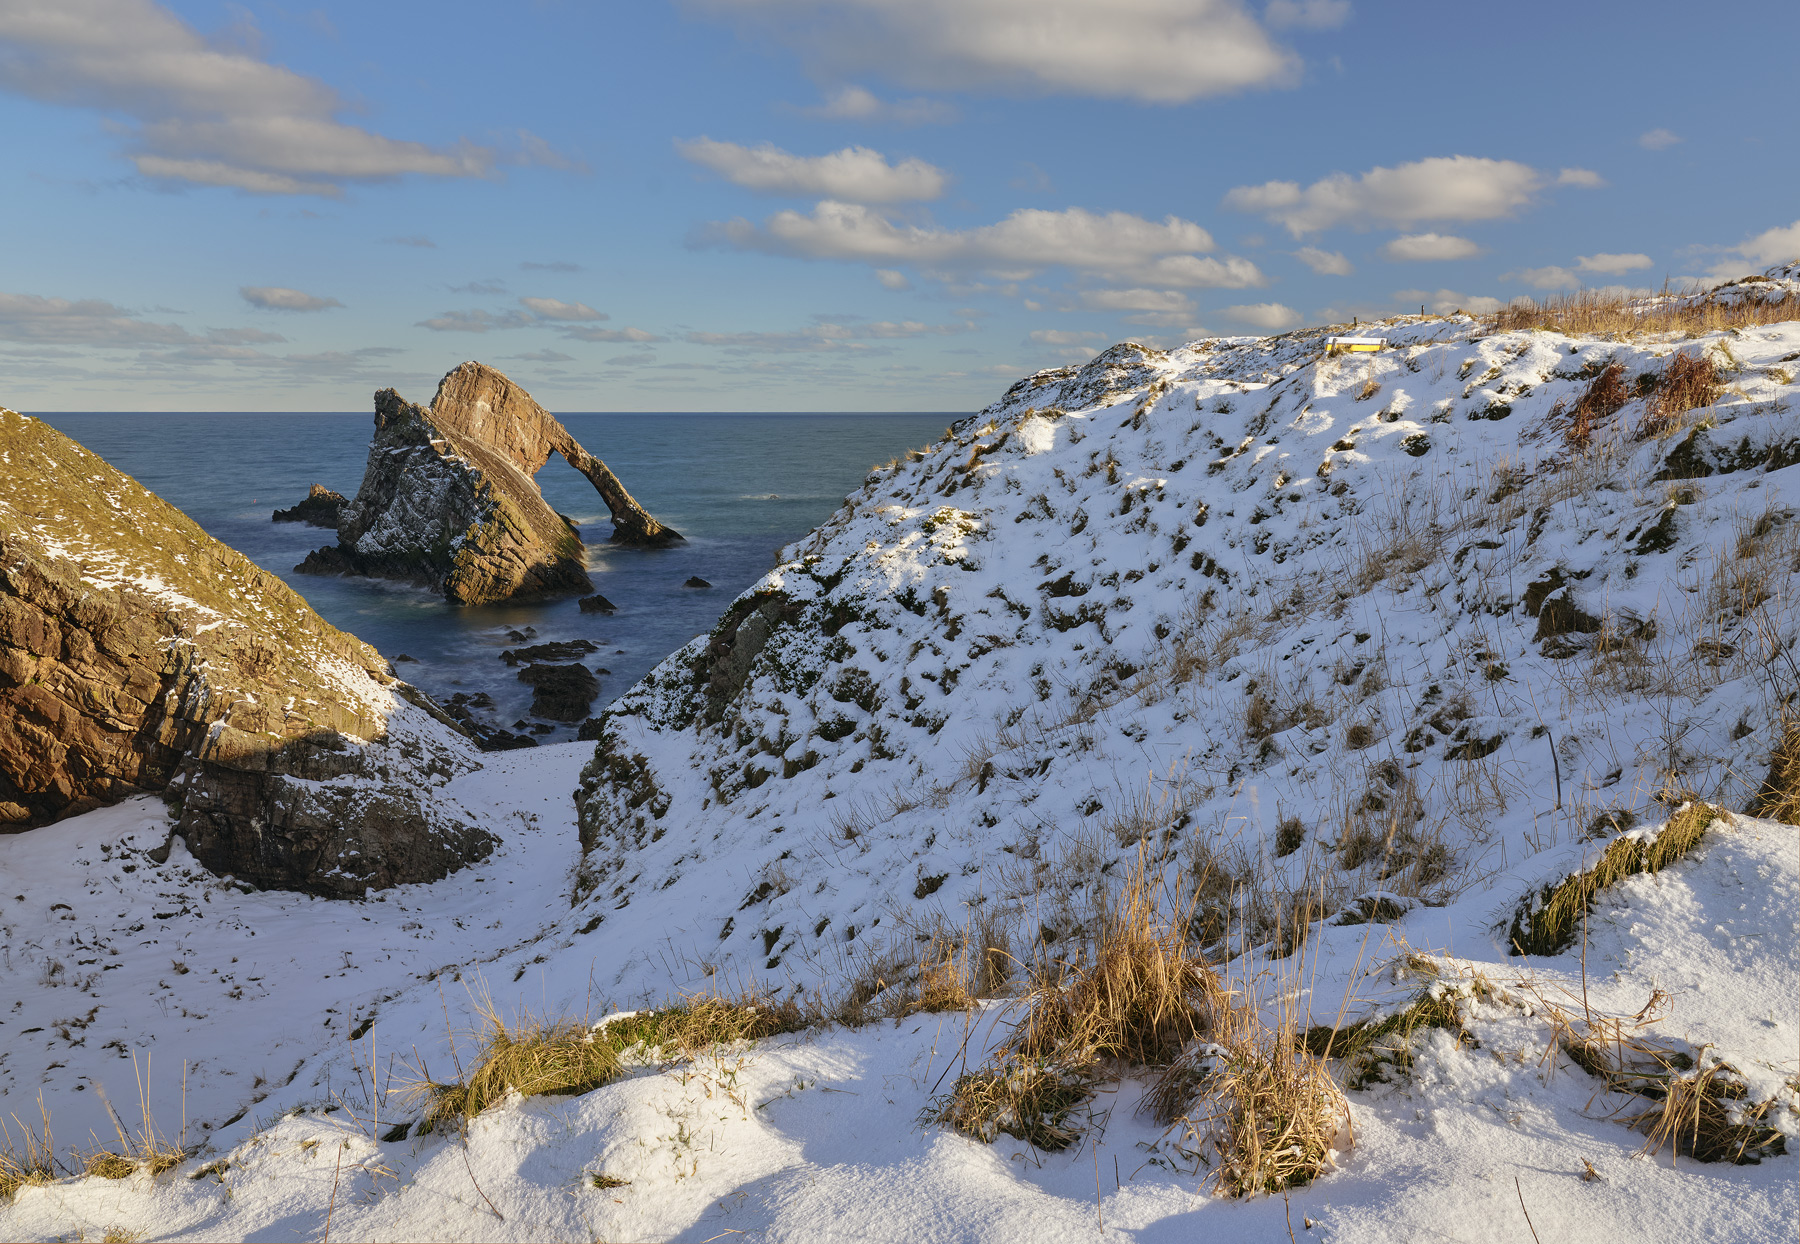 My second winter visit to Portknockie proved much more successful this winter as this time oodles of the white stuff had fallen...